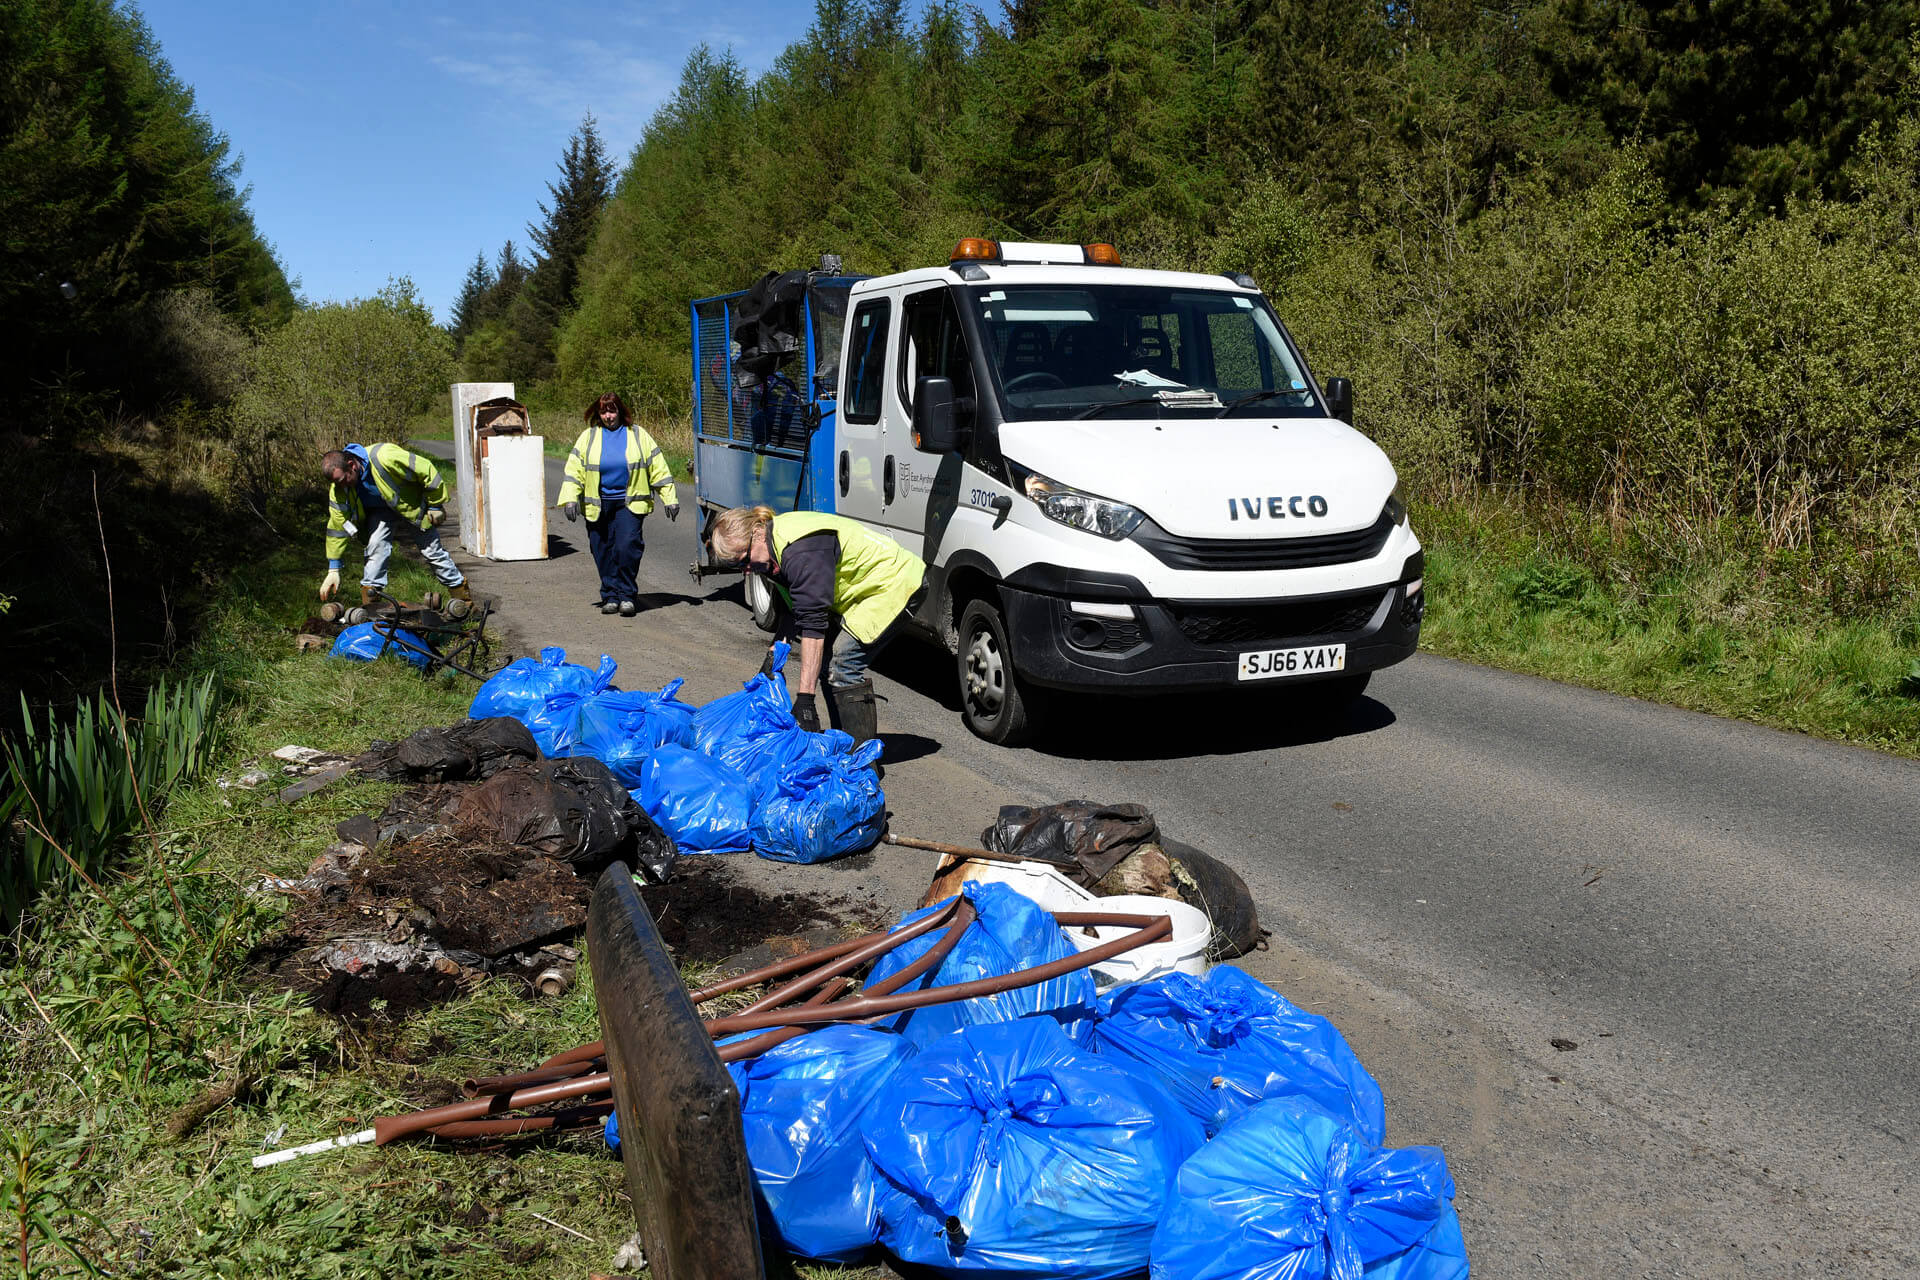 Report fly-tipping